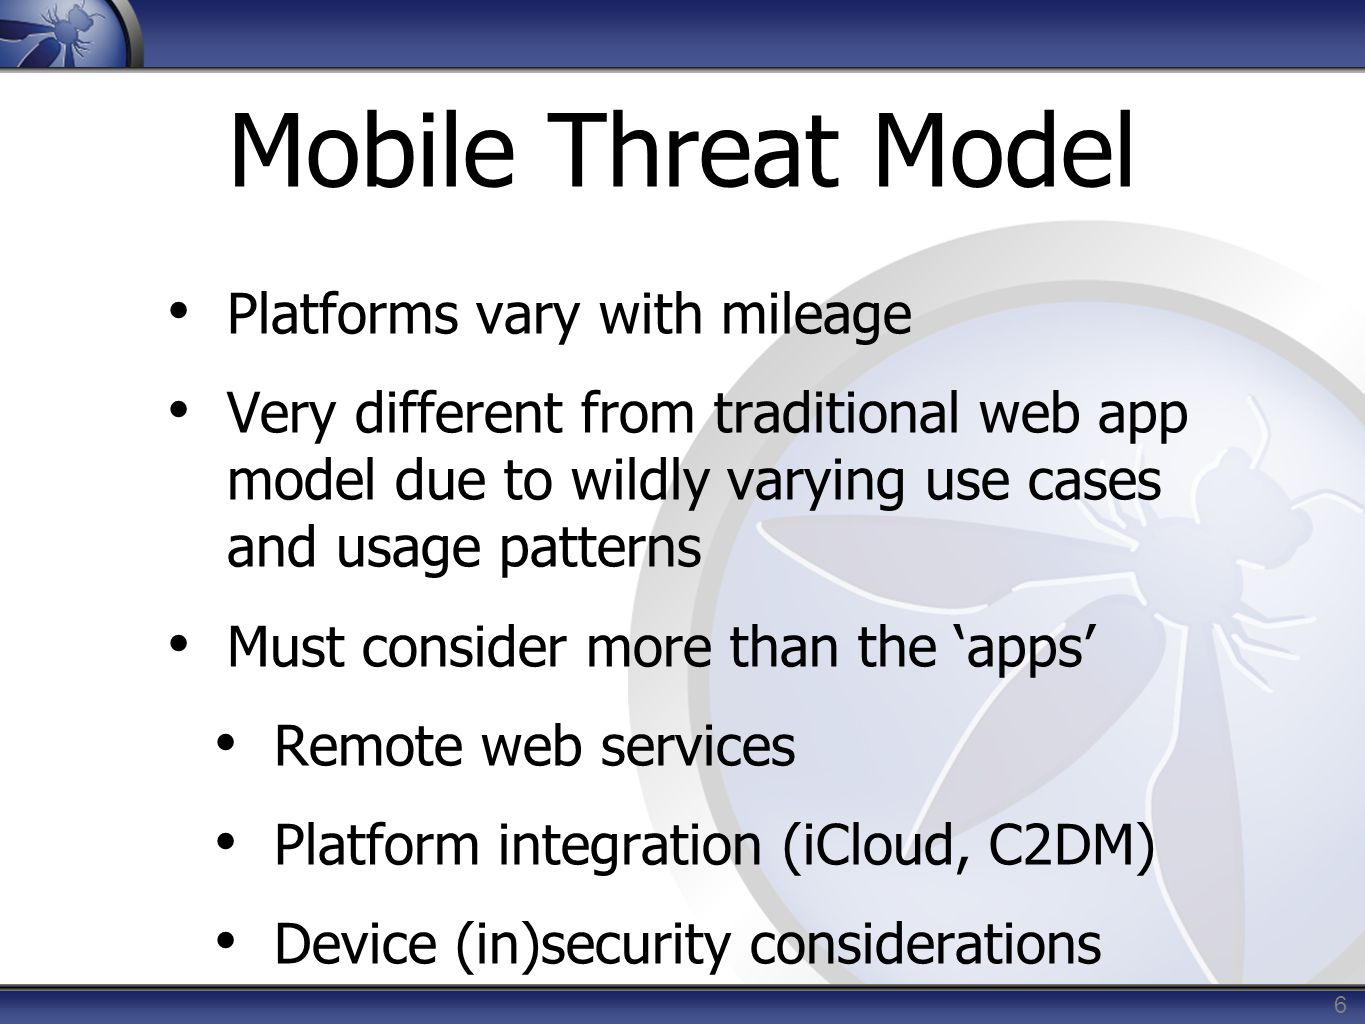 6 Platforms vary with mileage Very different from traditional web app model due to wildly varying use cases and usage patterns Must consider more than